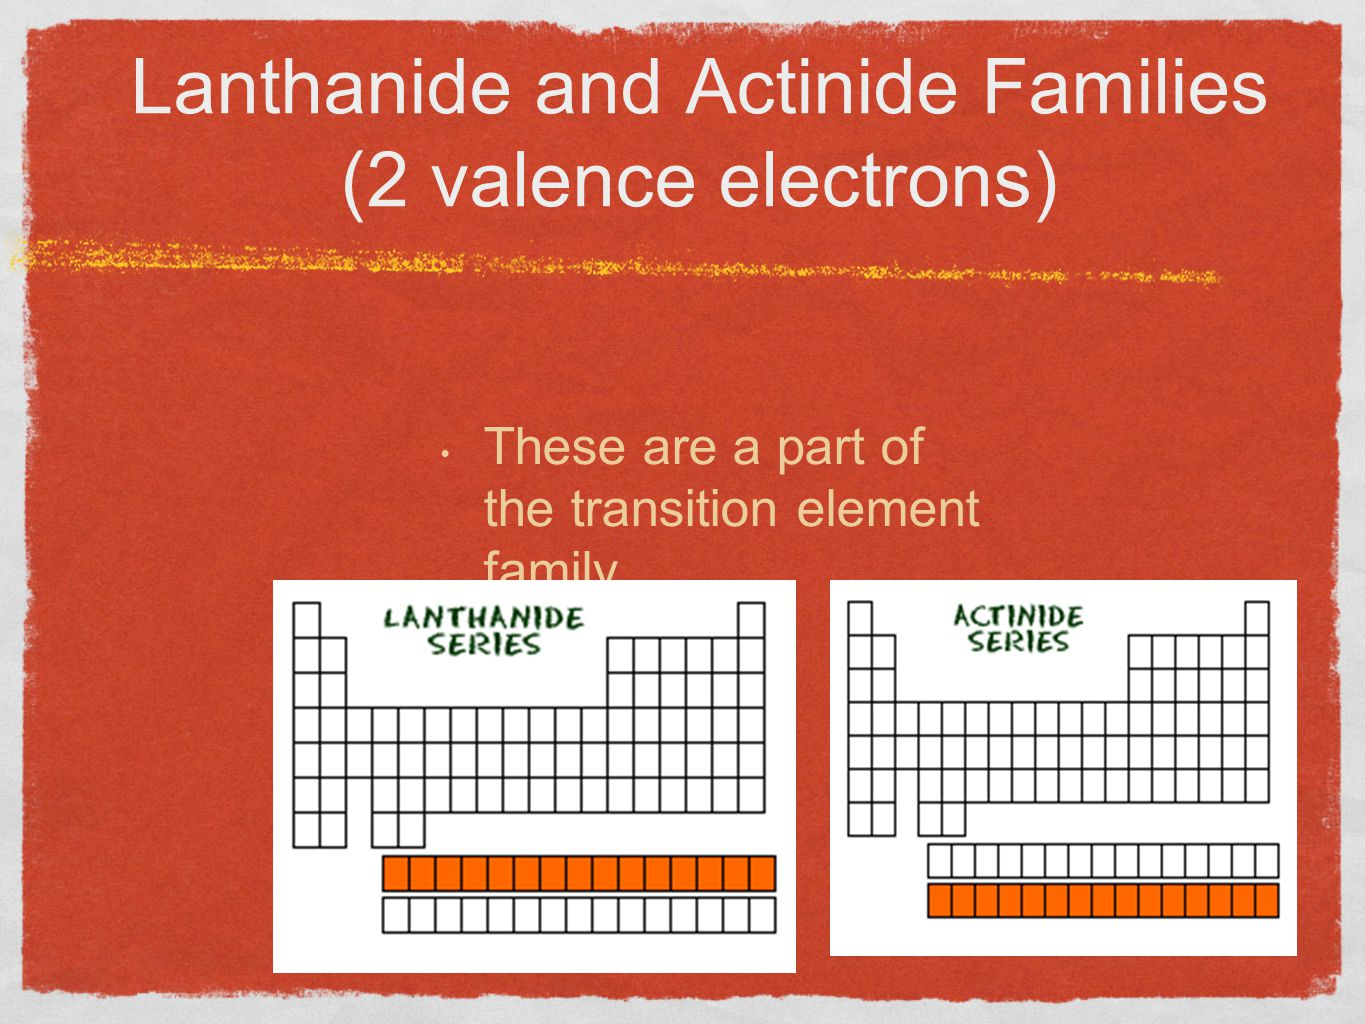 Lanthanide and Actinide Families (2 valence electrons)